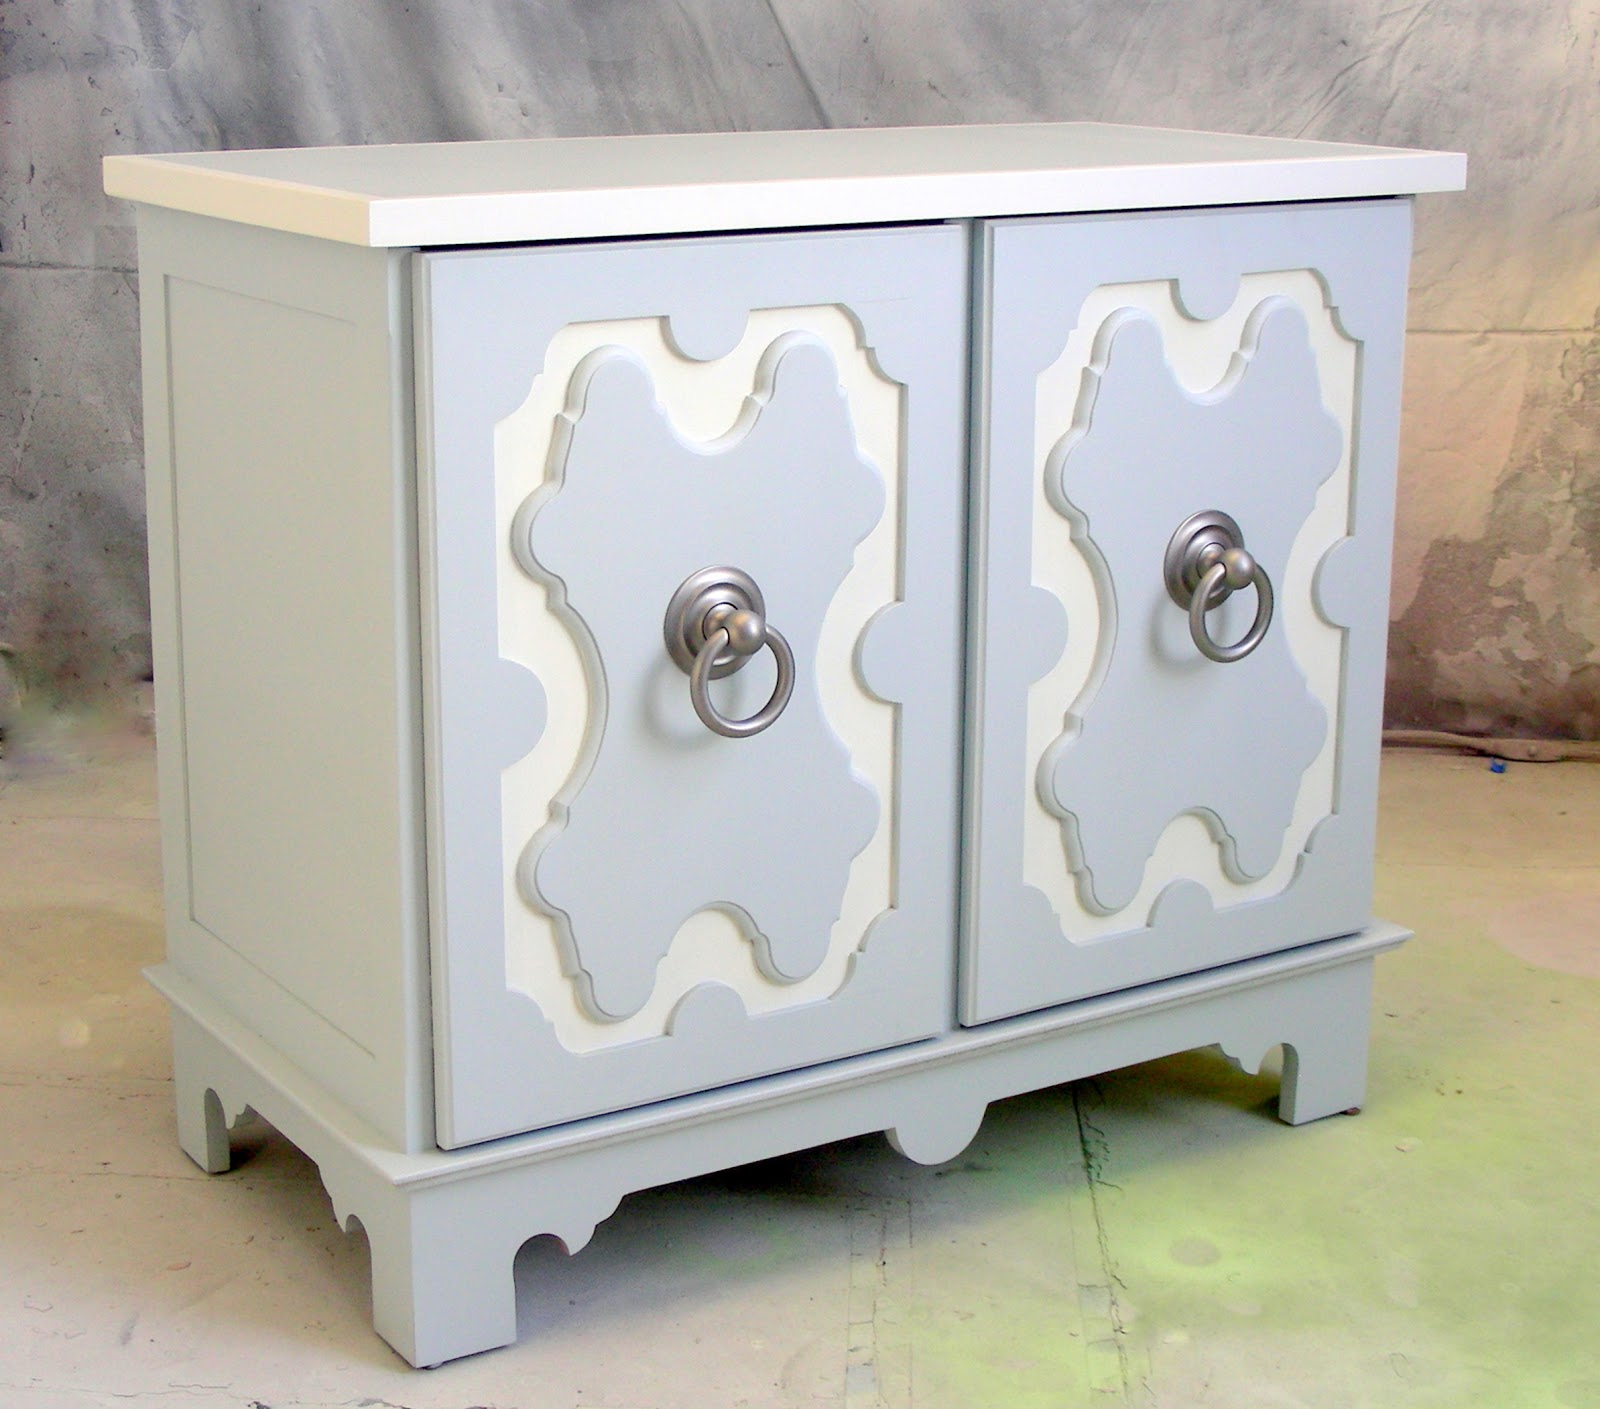 Amazing The Satin Nickel Ring Pulls On This Cabinet Are Actually Door Knobs.